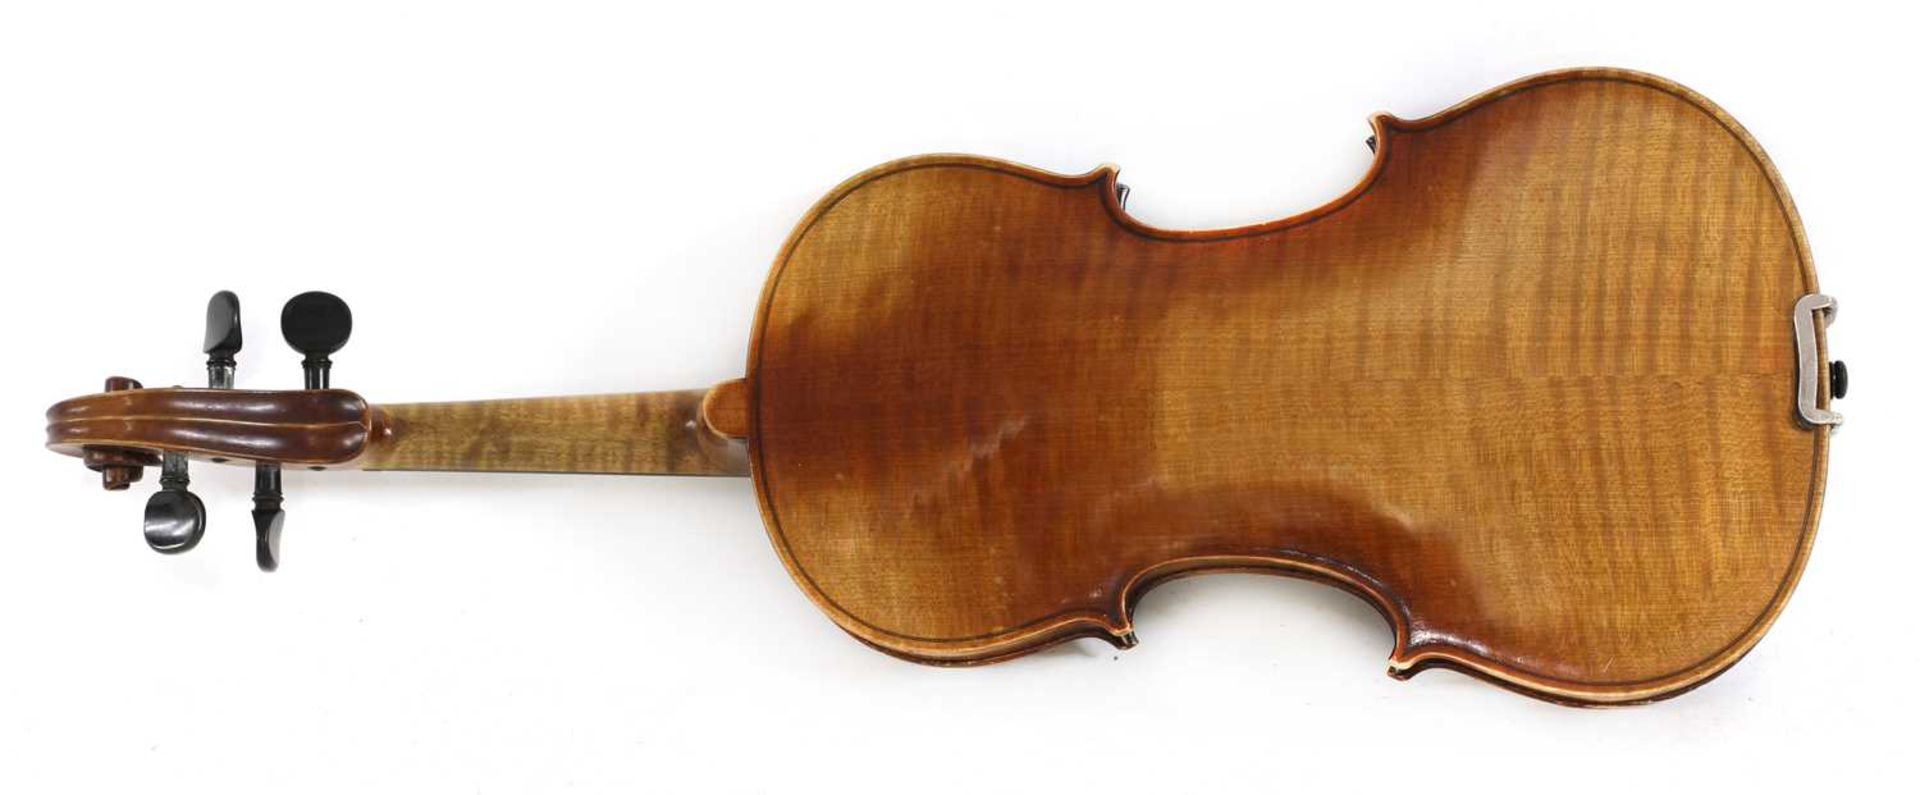 A Continental violin, - Image 7 of 7